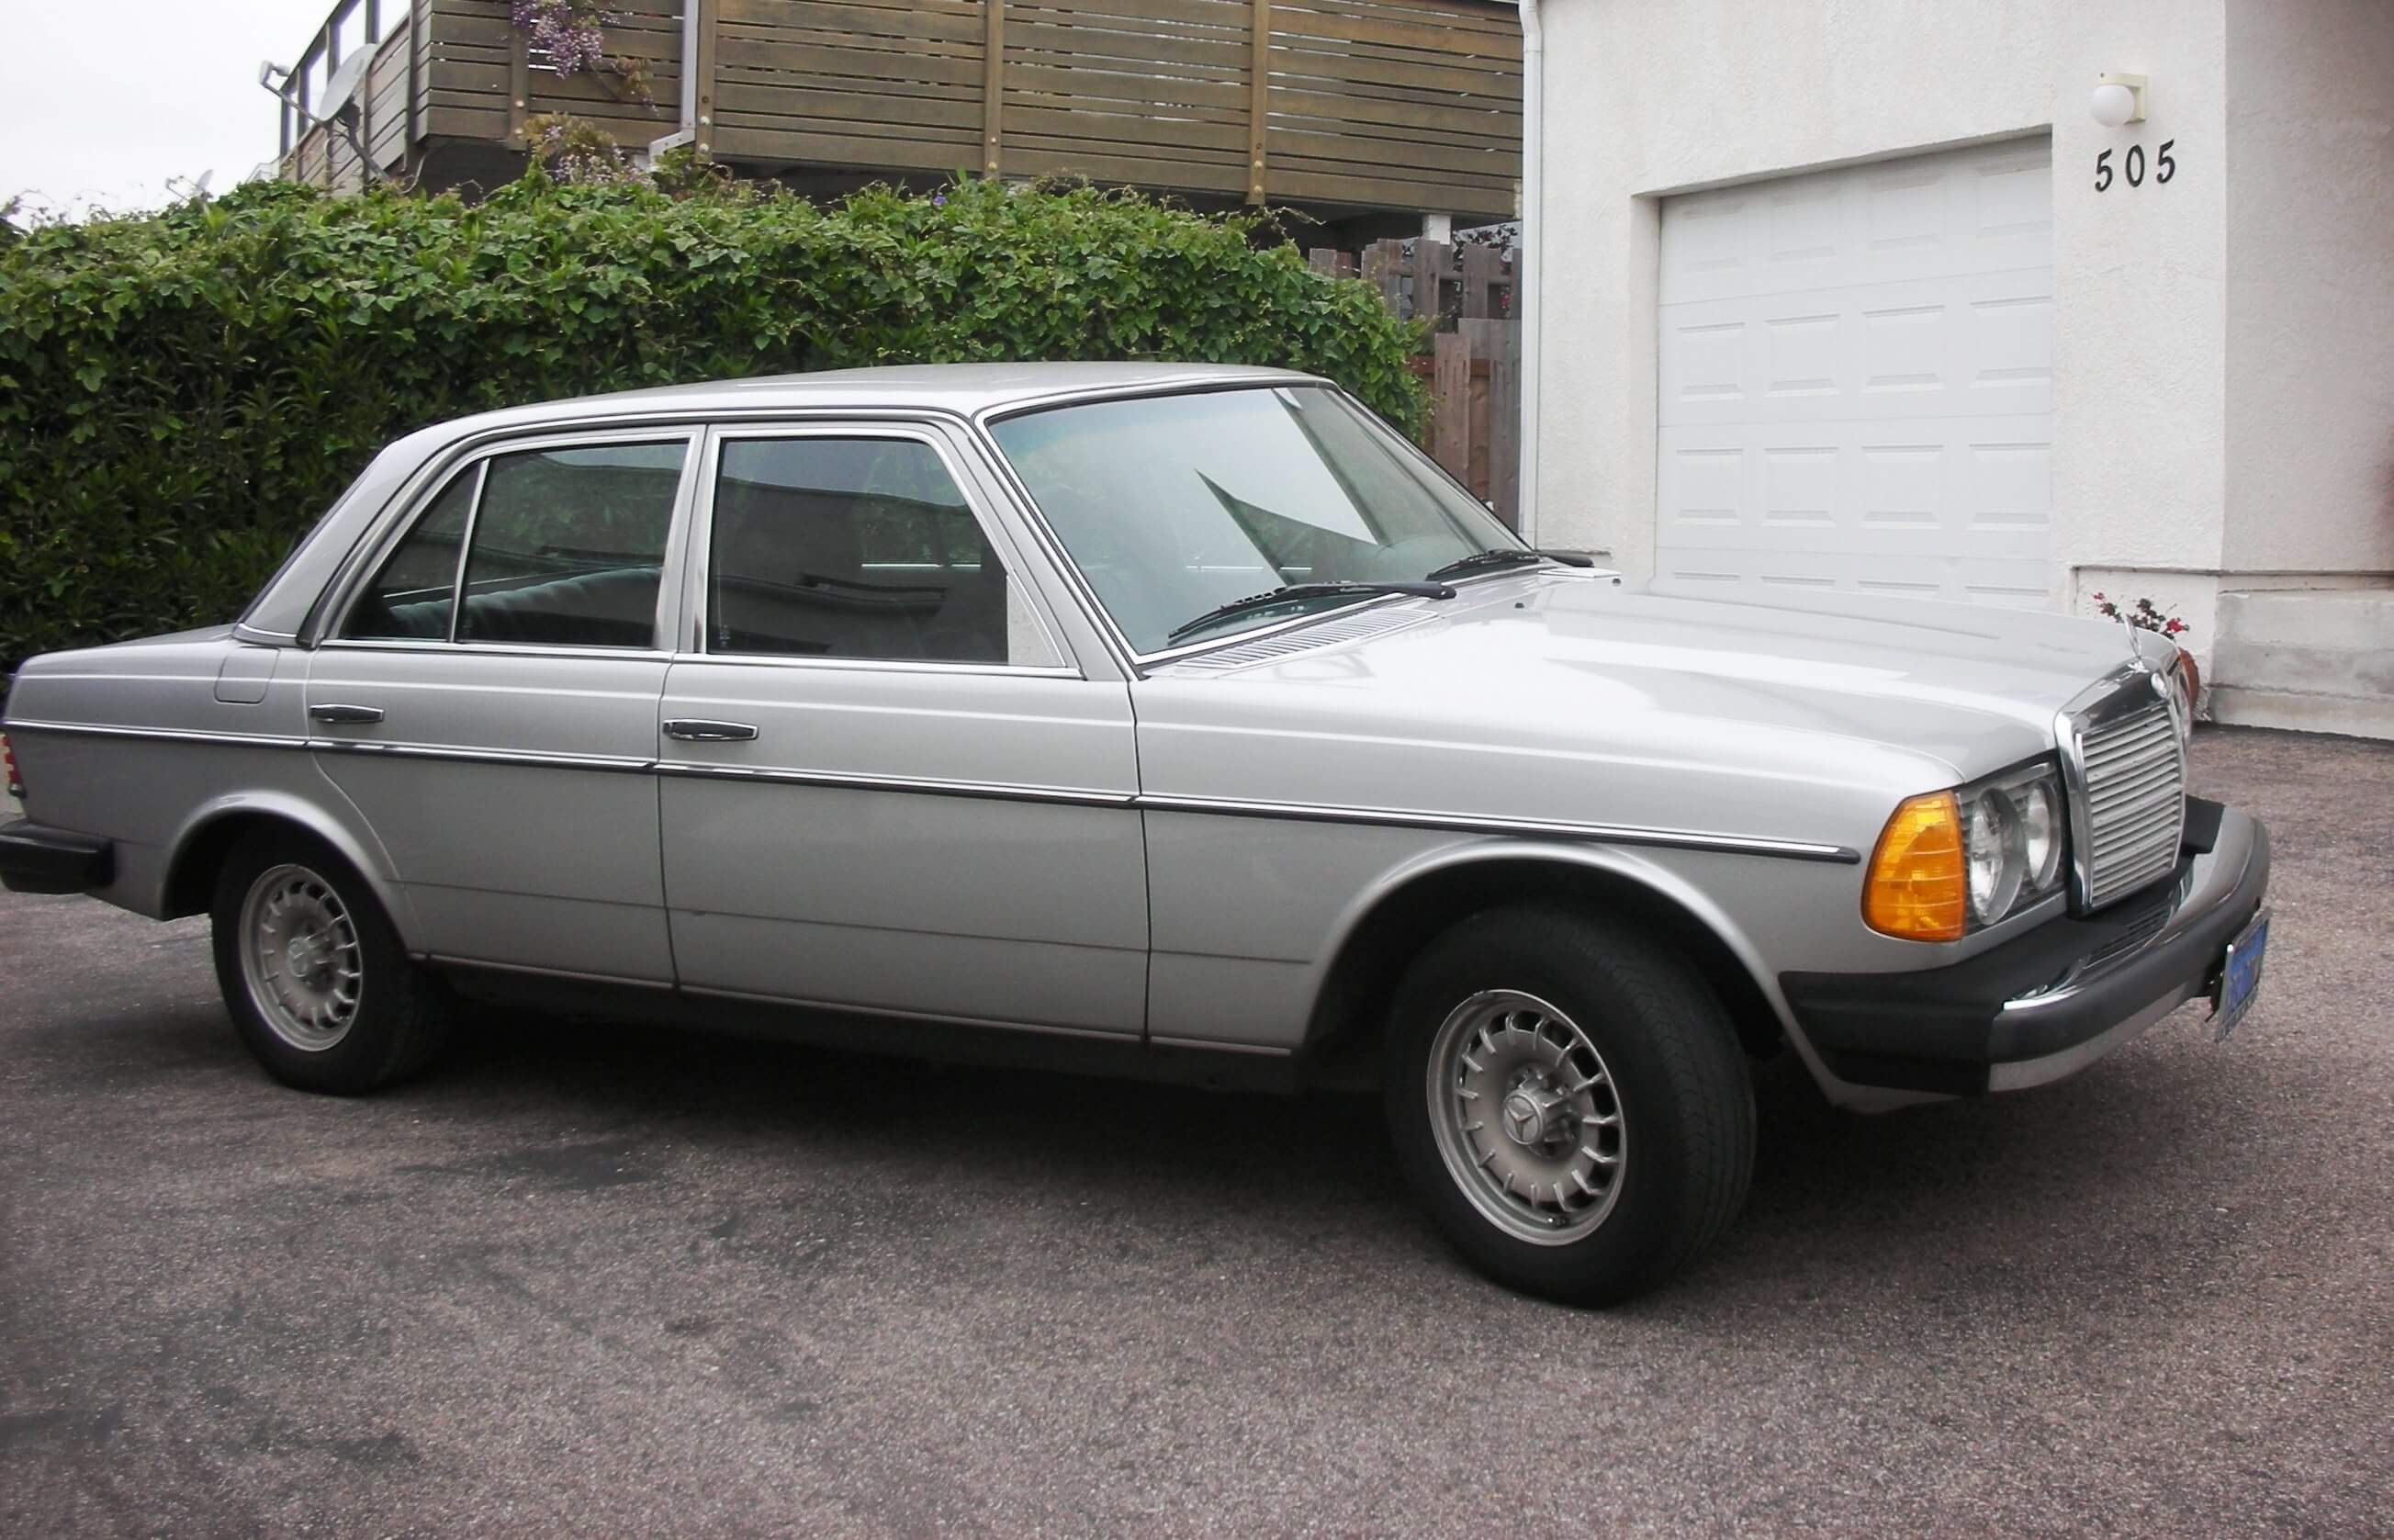 1980 mercedes 300d for sale images for 1980 mercedes benz for sale